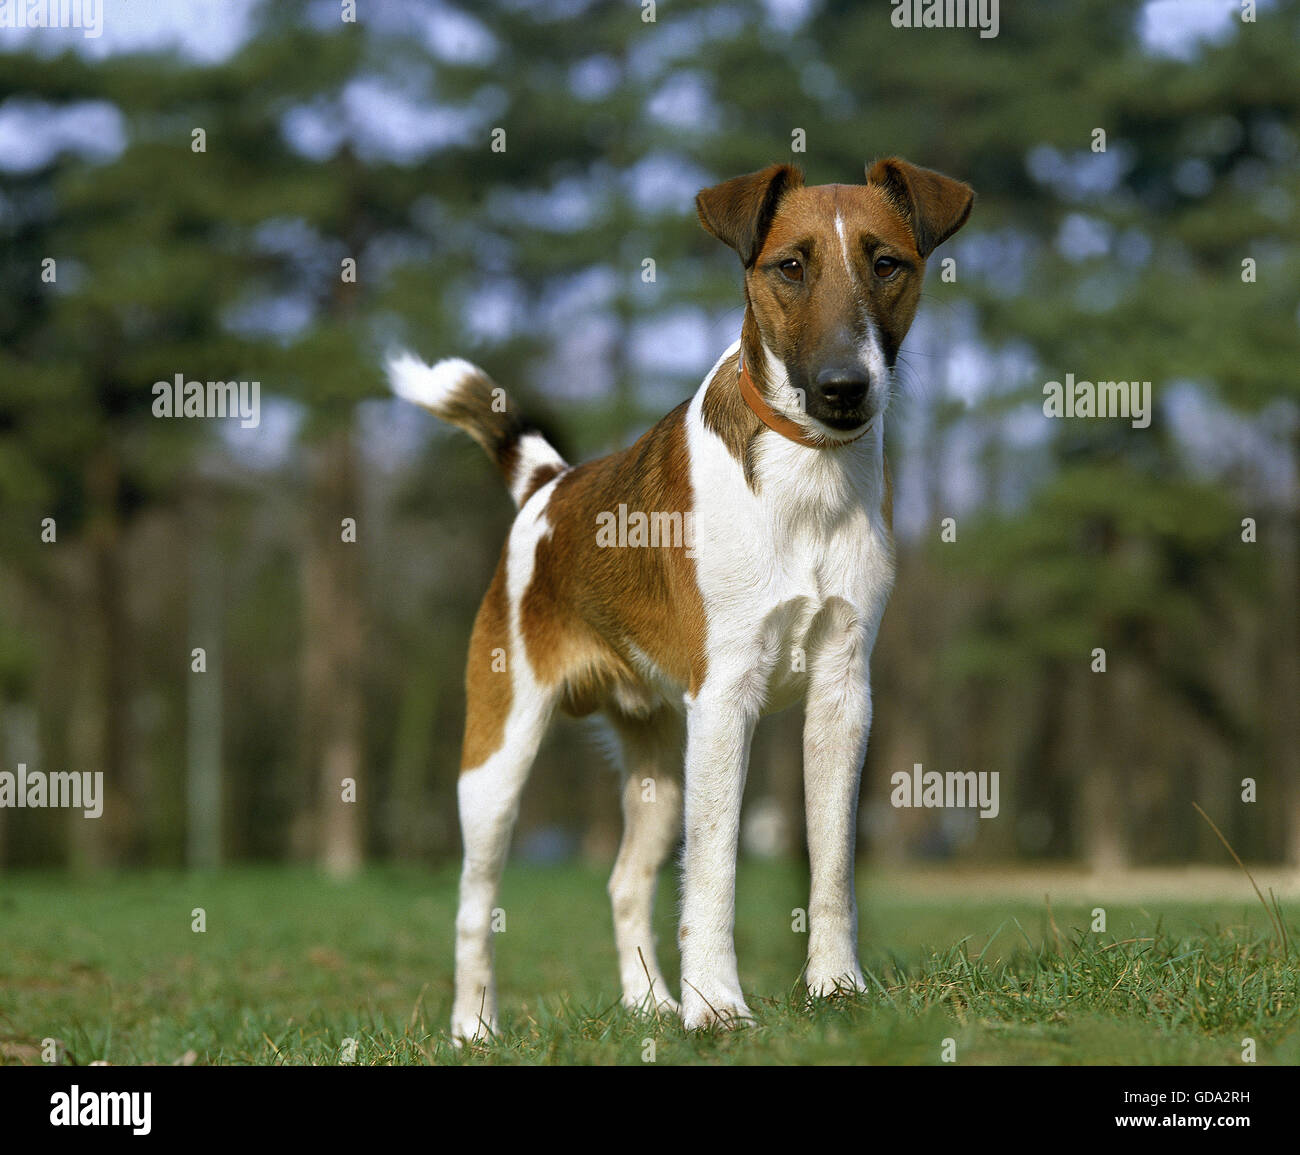 Smooth Fox Terrier Dog with Collar - Stock Image